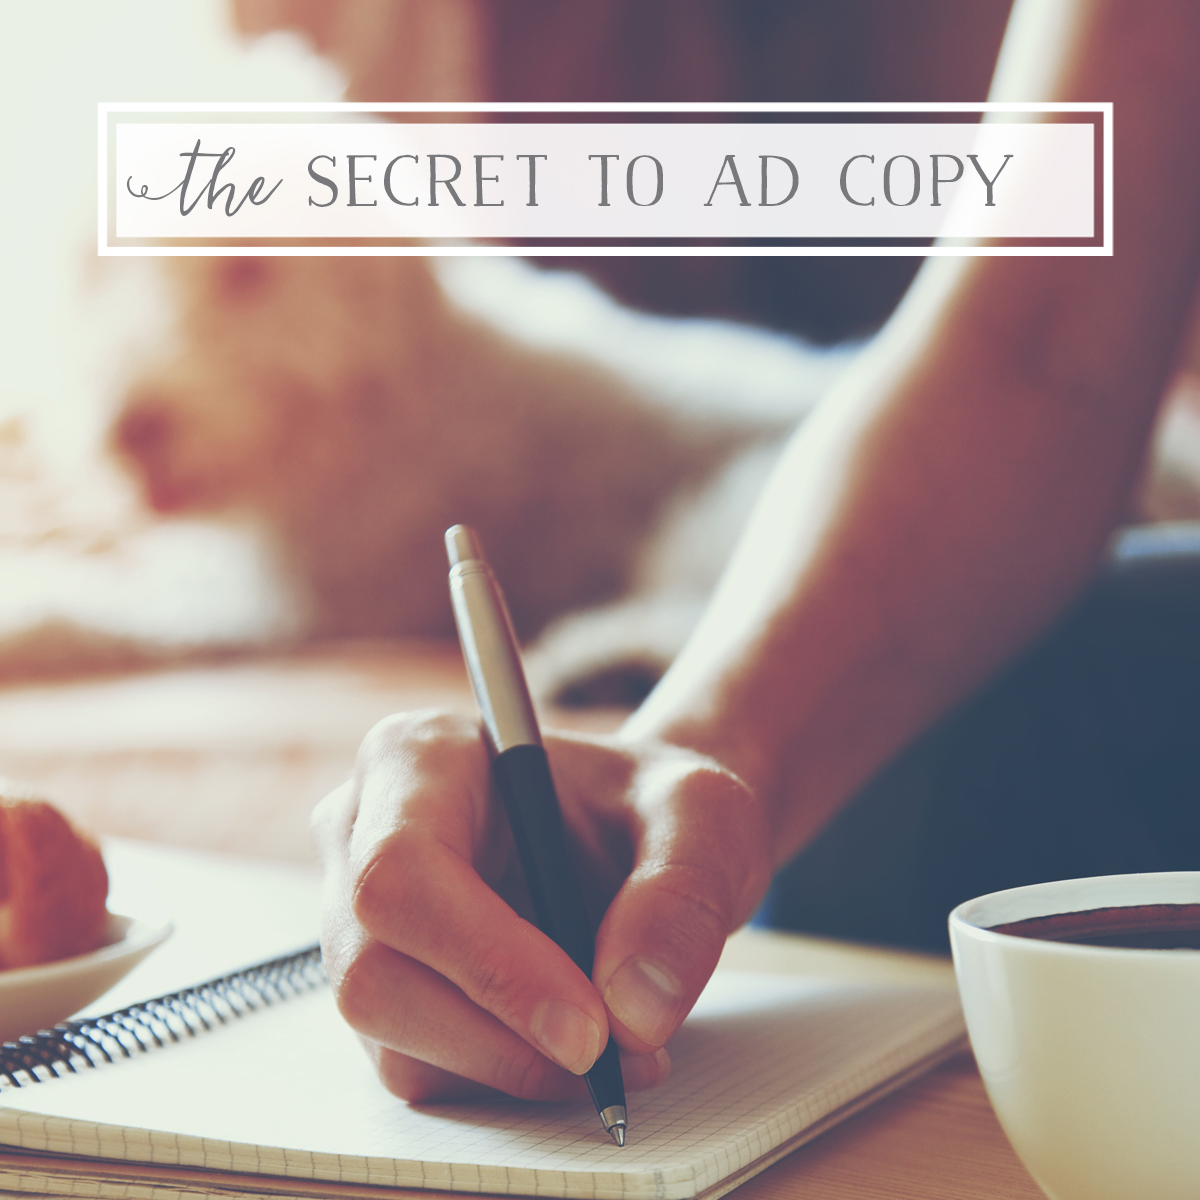 The Secret to Writing Ad Copy